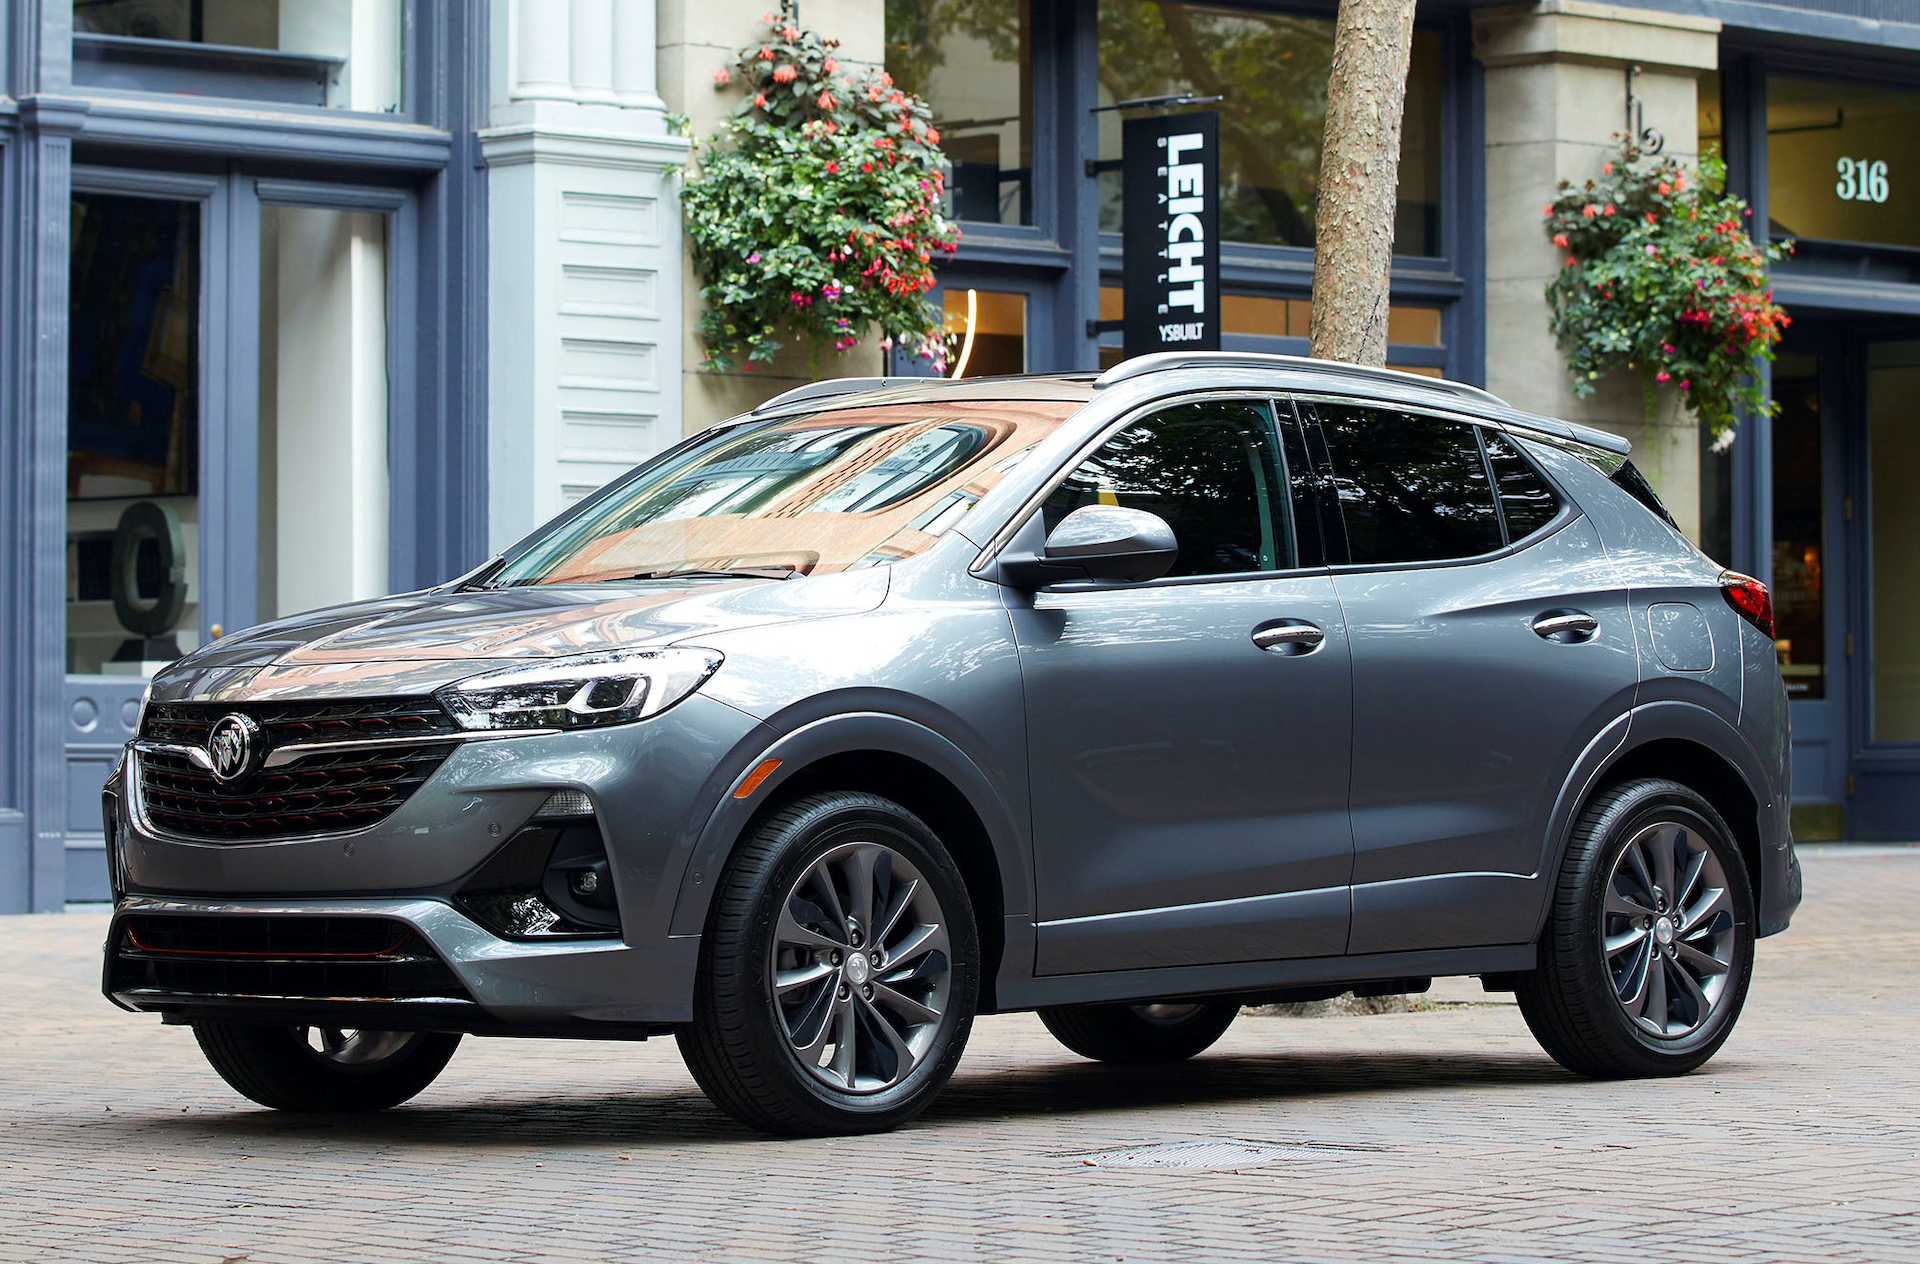 2021 Buick Encore Review, Ratings, Specs, Prices, And Photos Difference Between New 2021 Buick Encore And Encore Gx